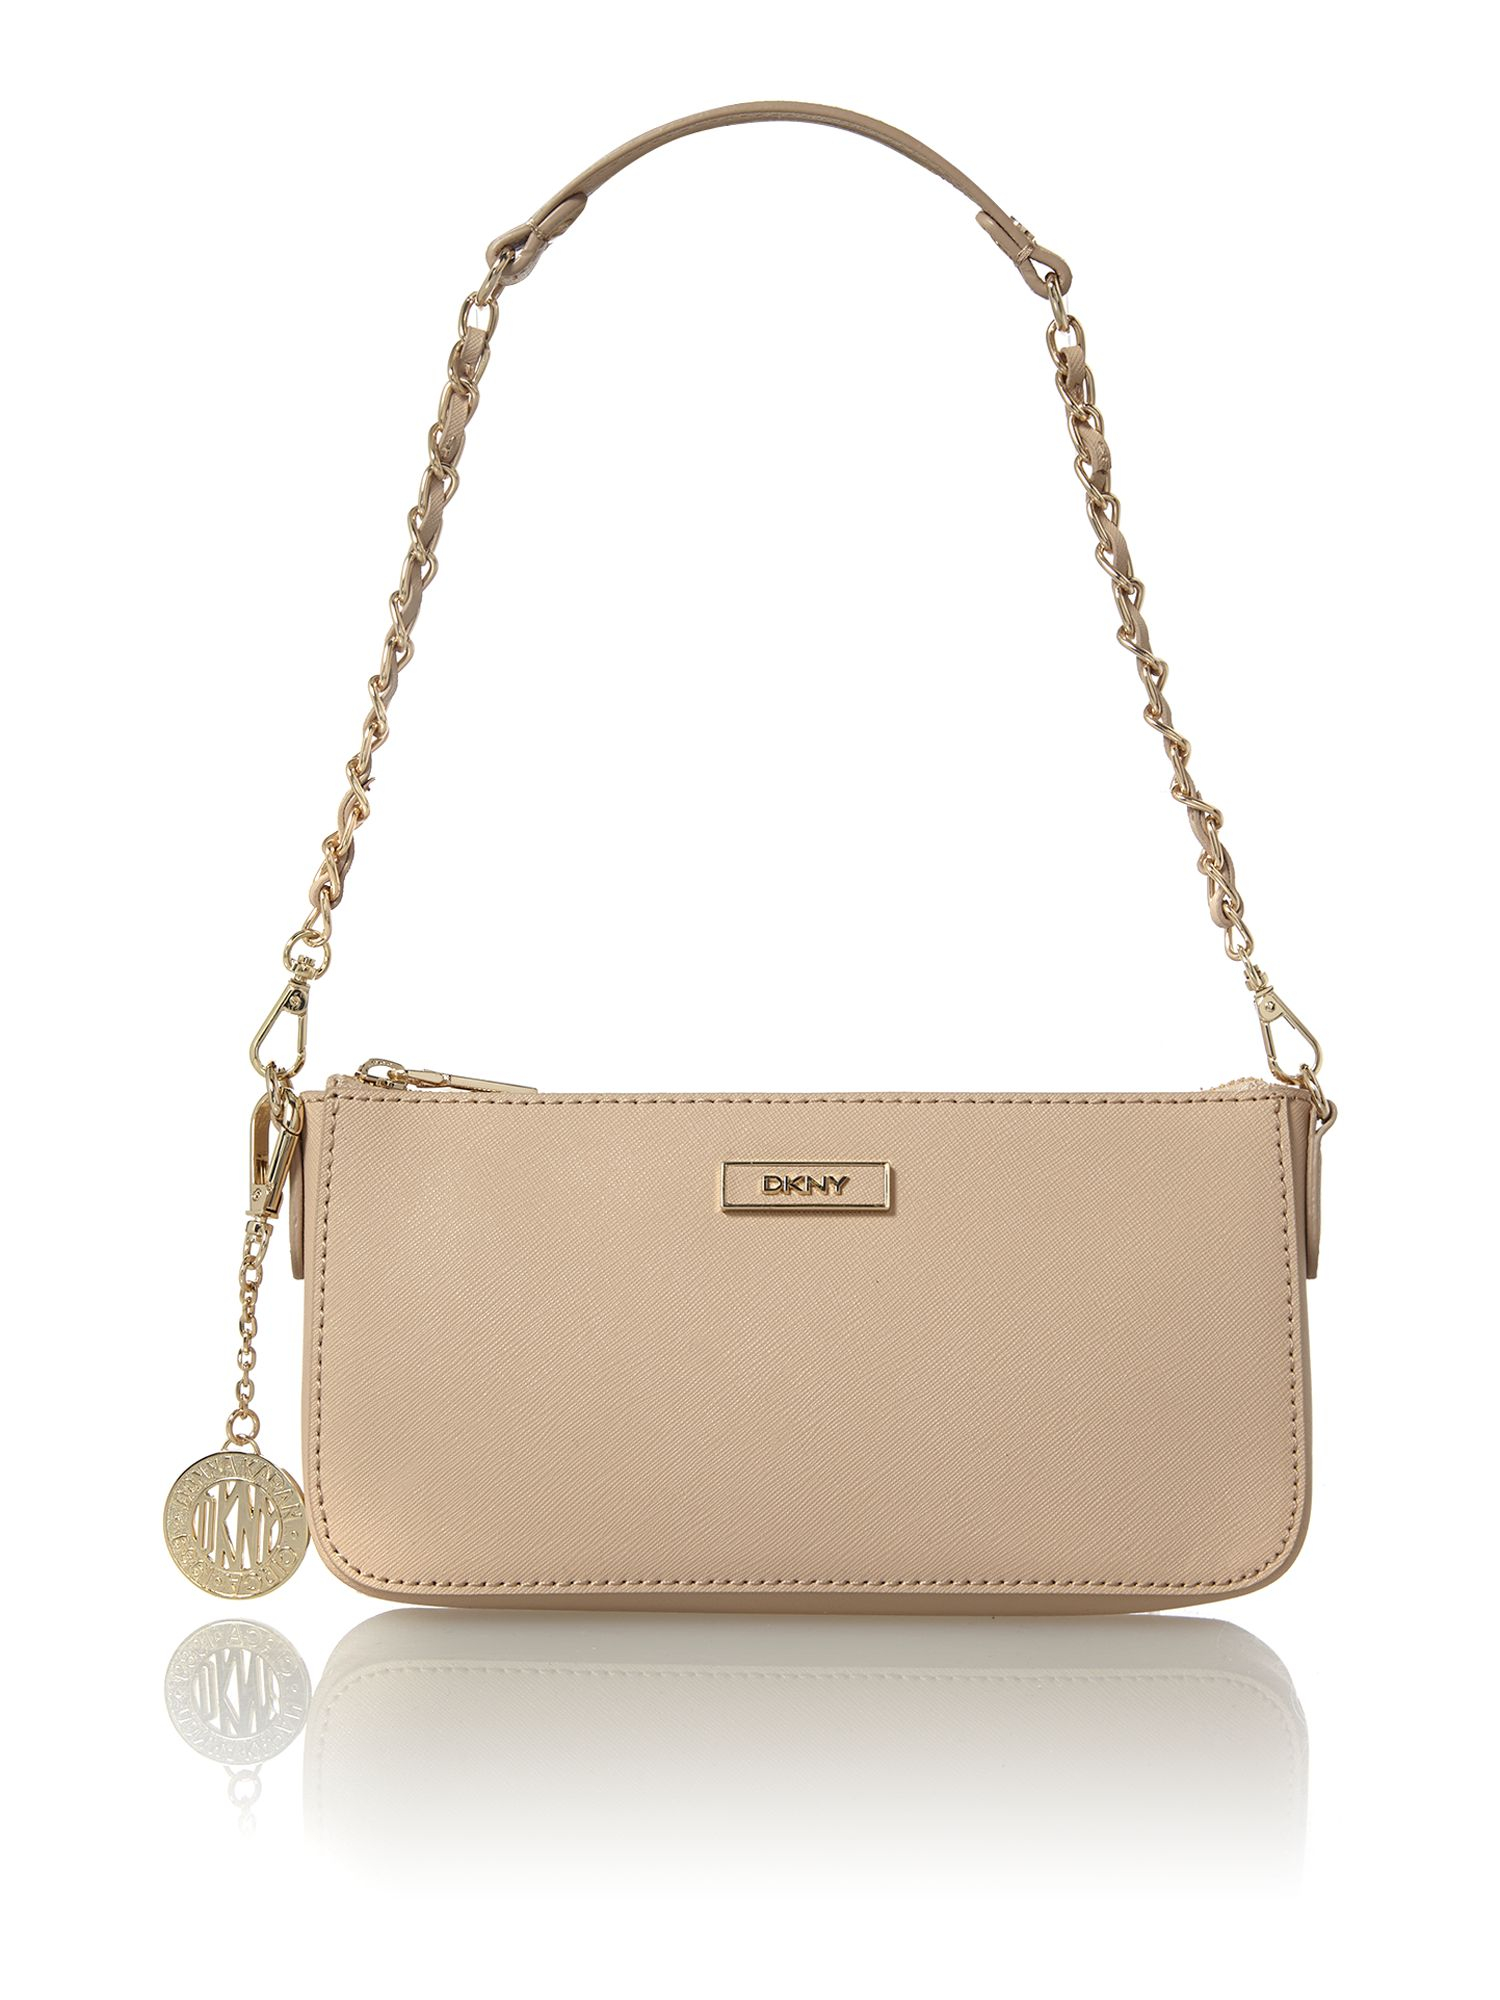 Dkny Saffiano Neutral Small Shoulder Bag in Natural | Lyst